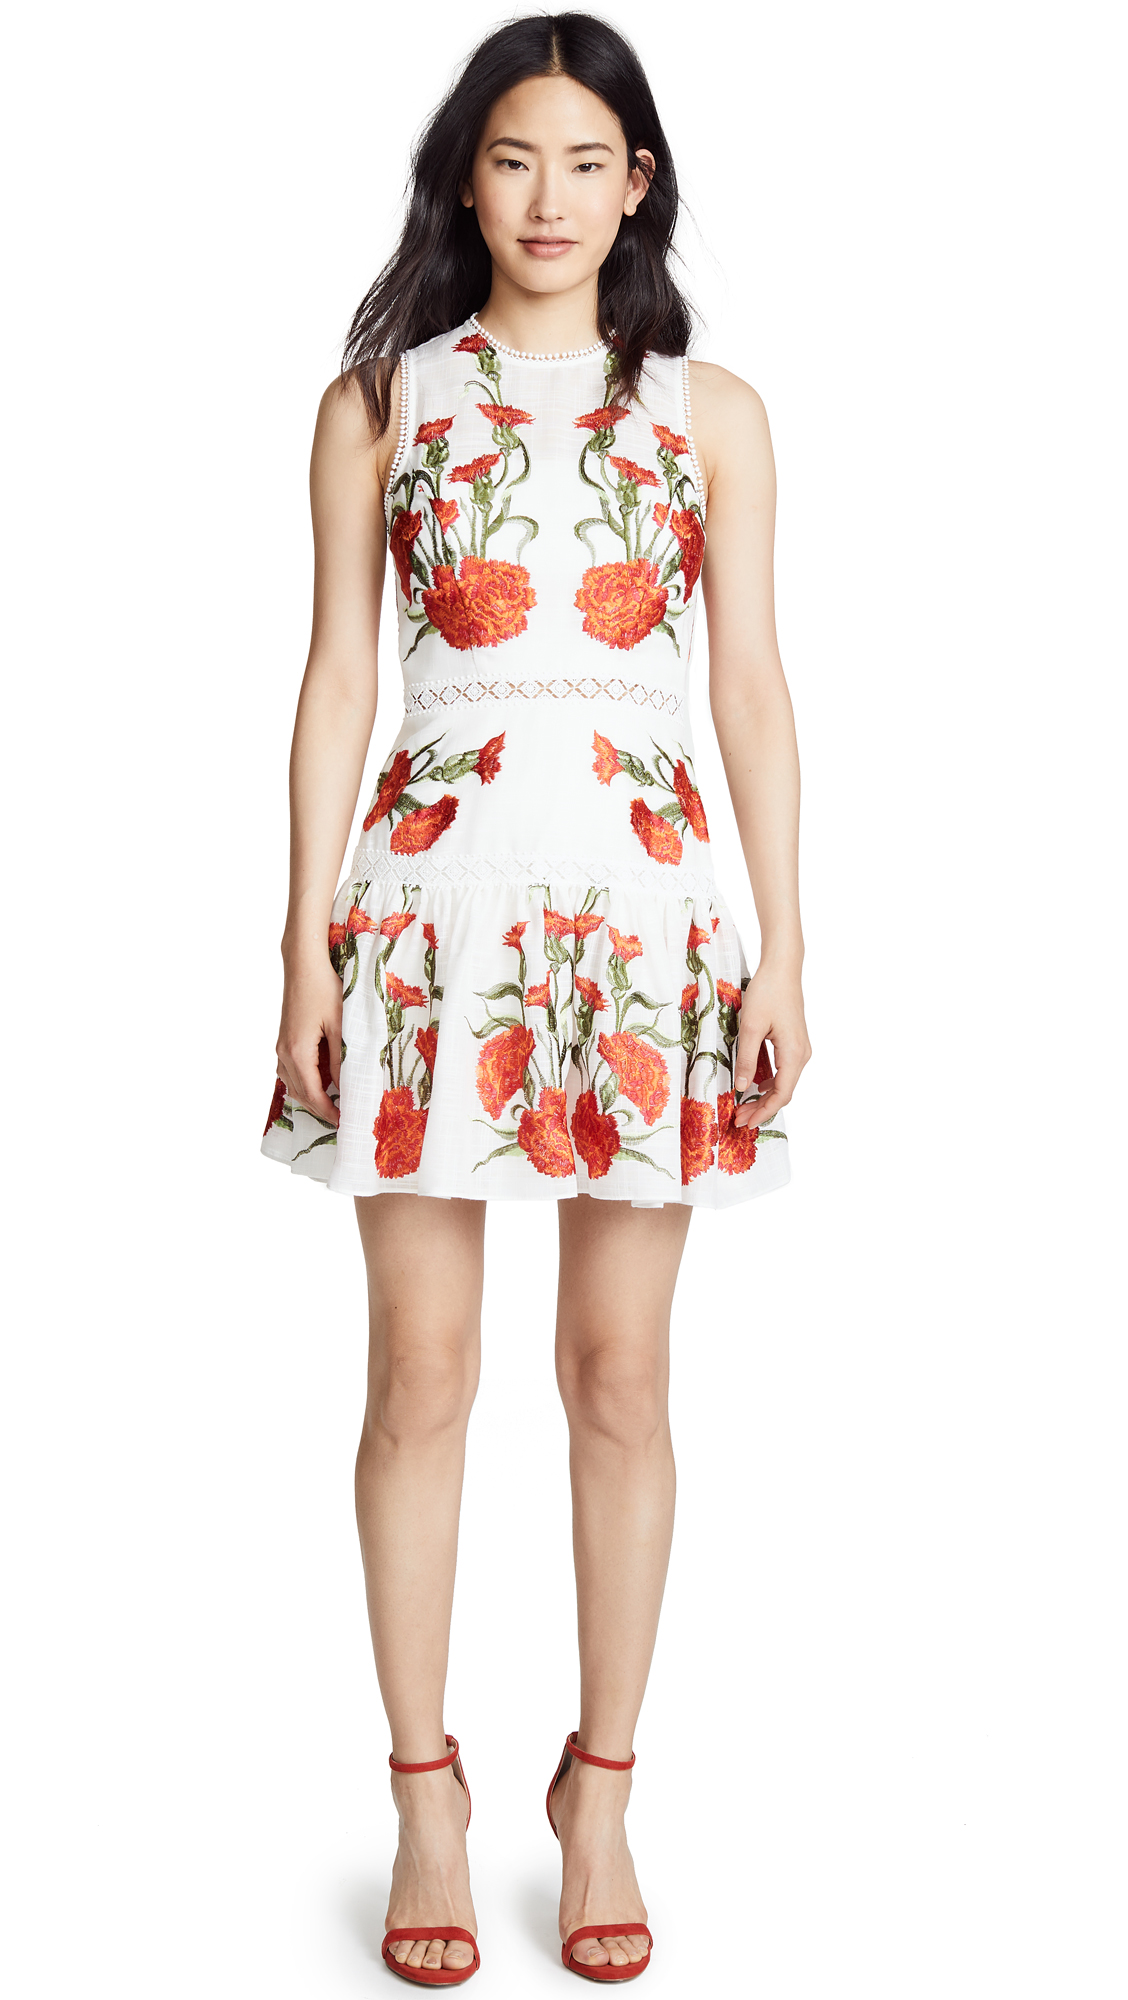 Alexis Sabella Dress In Blossom Embroidery